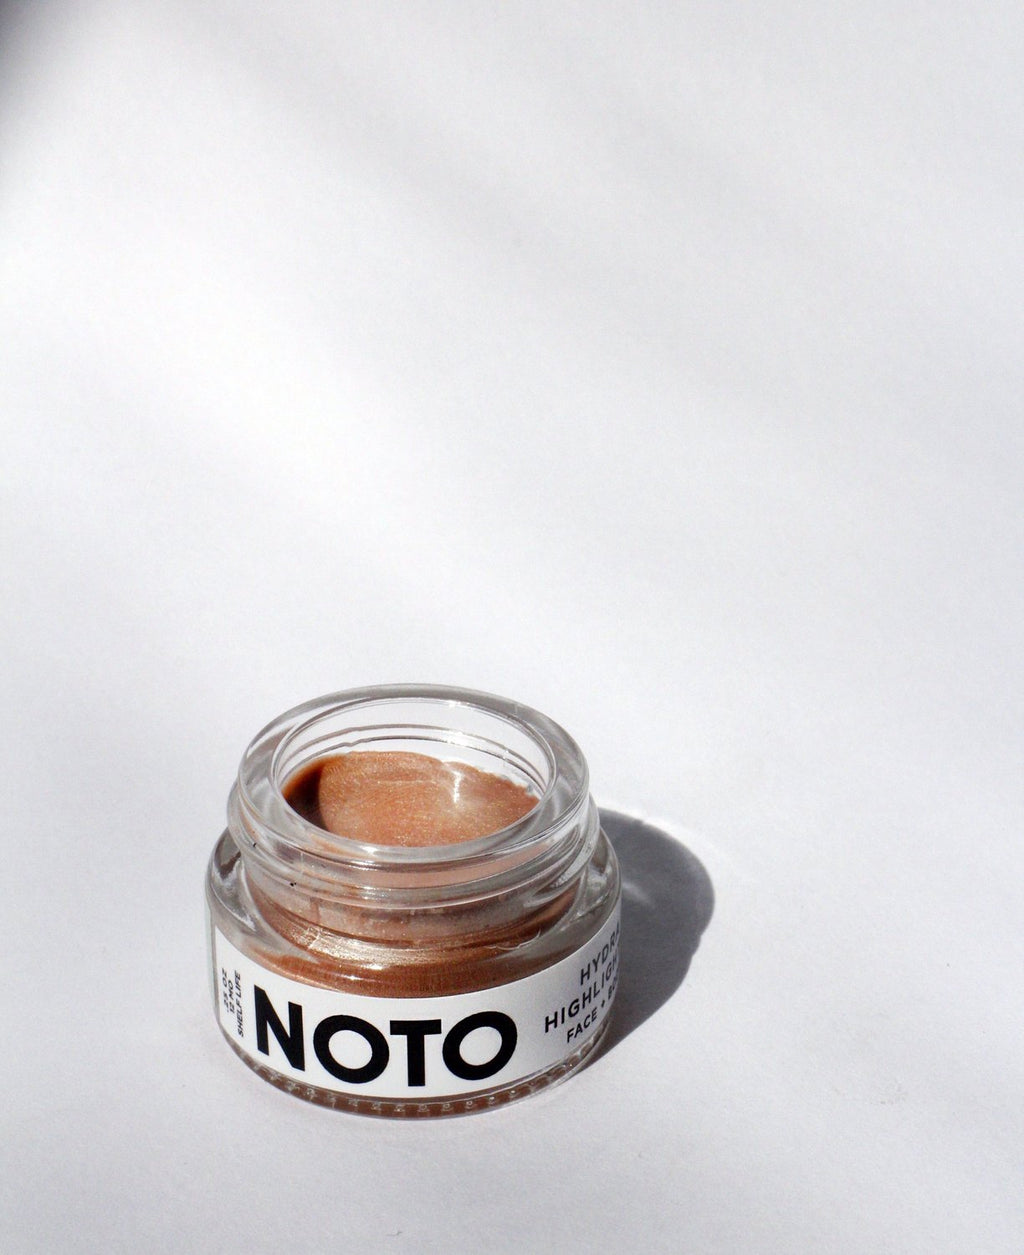 Hydra Highlighter Pot